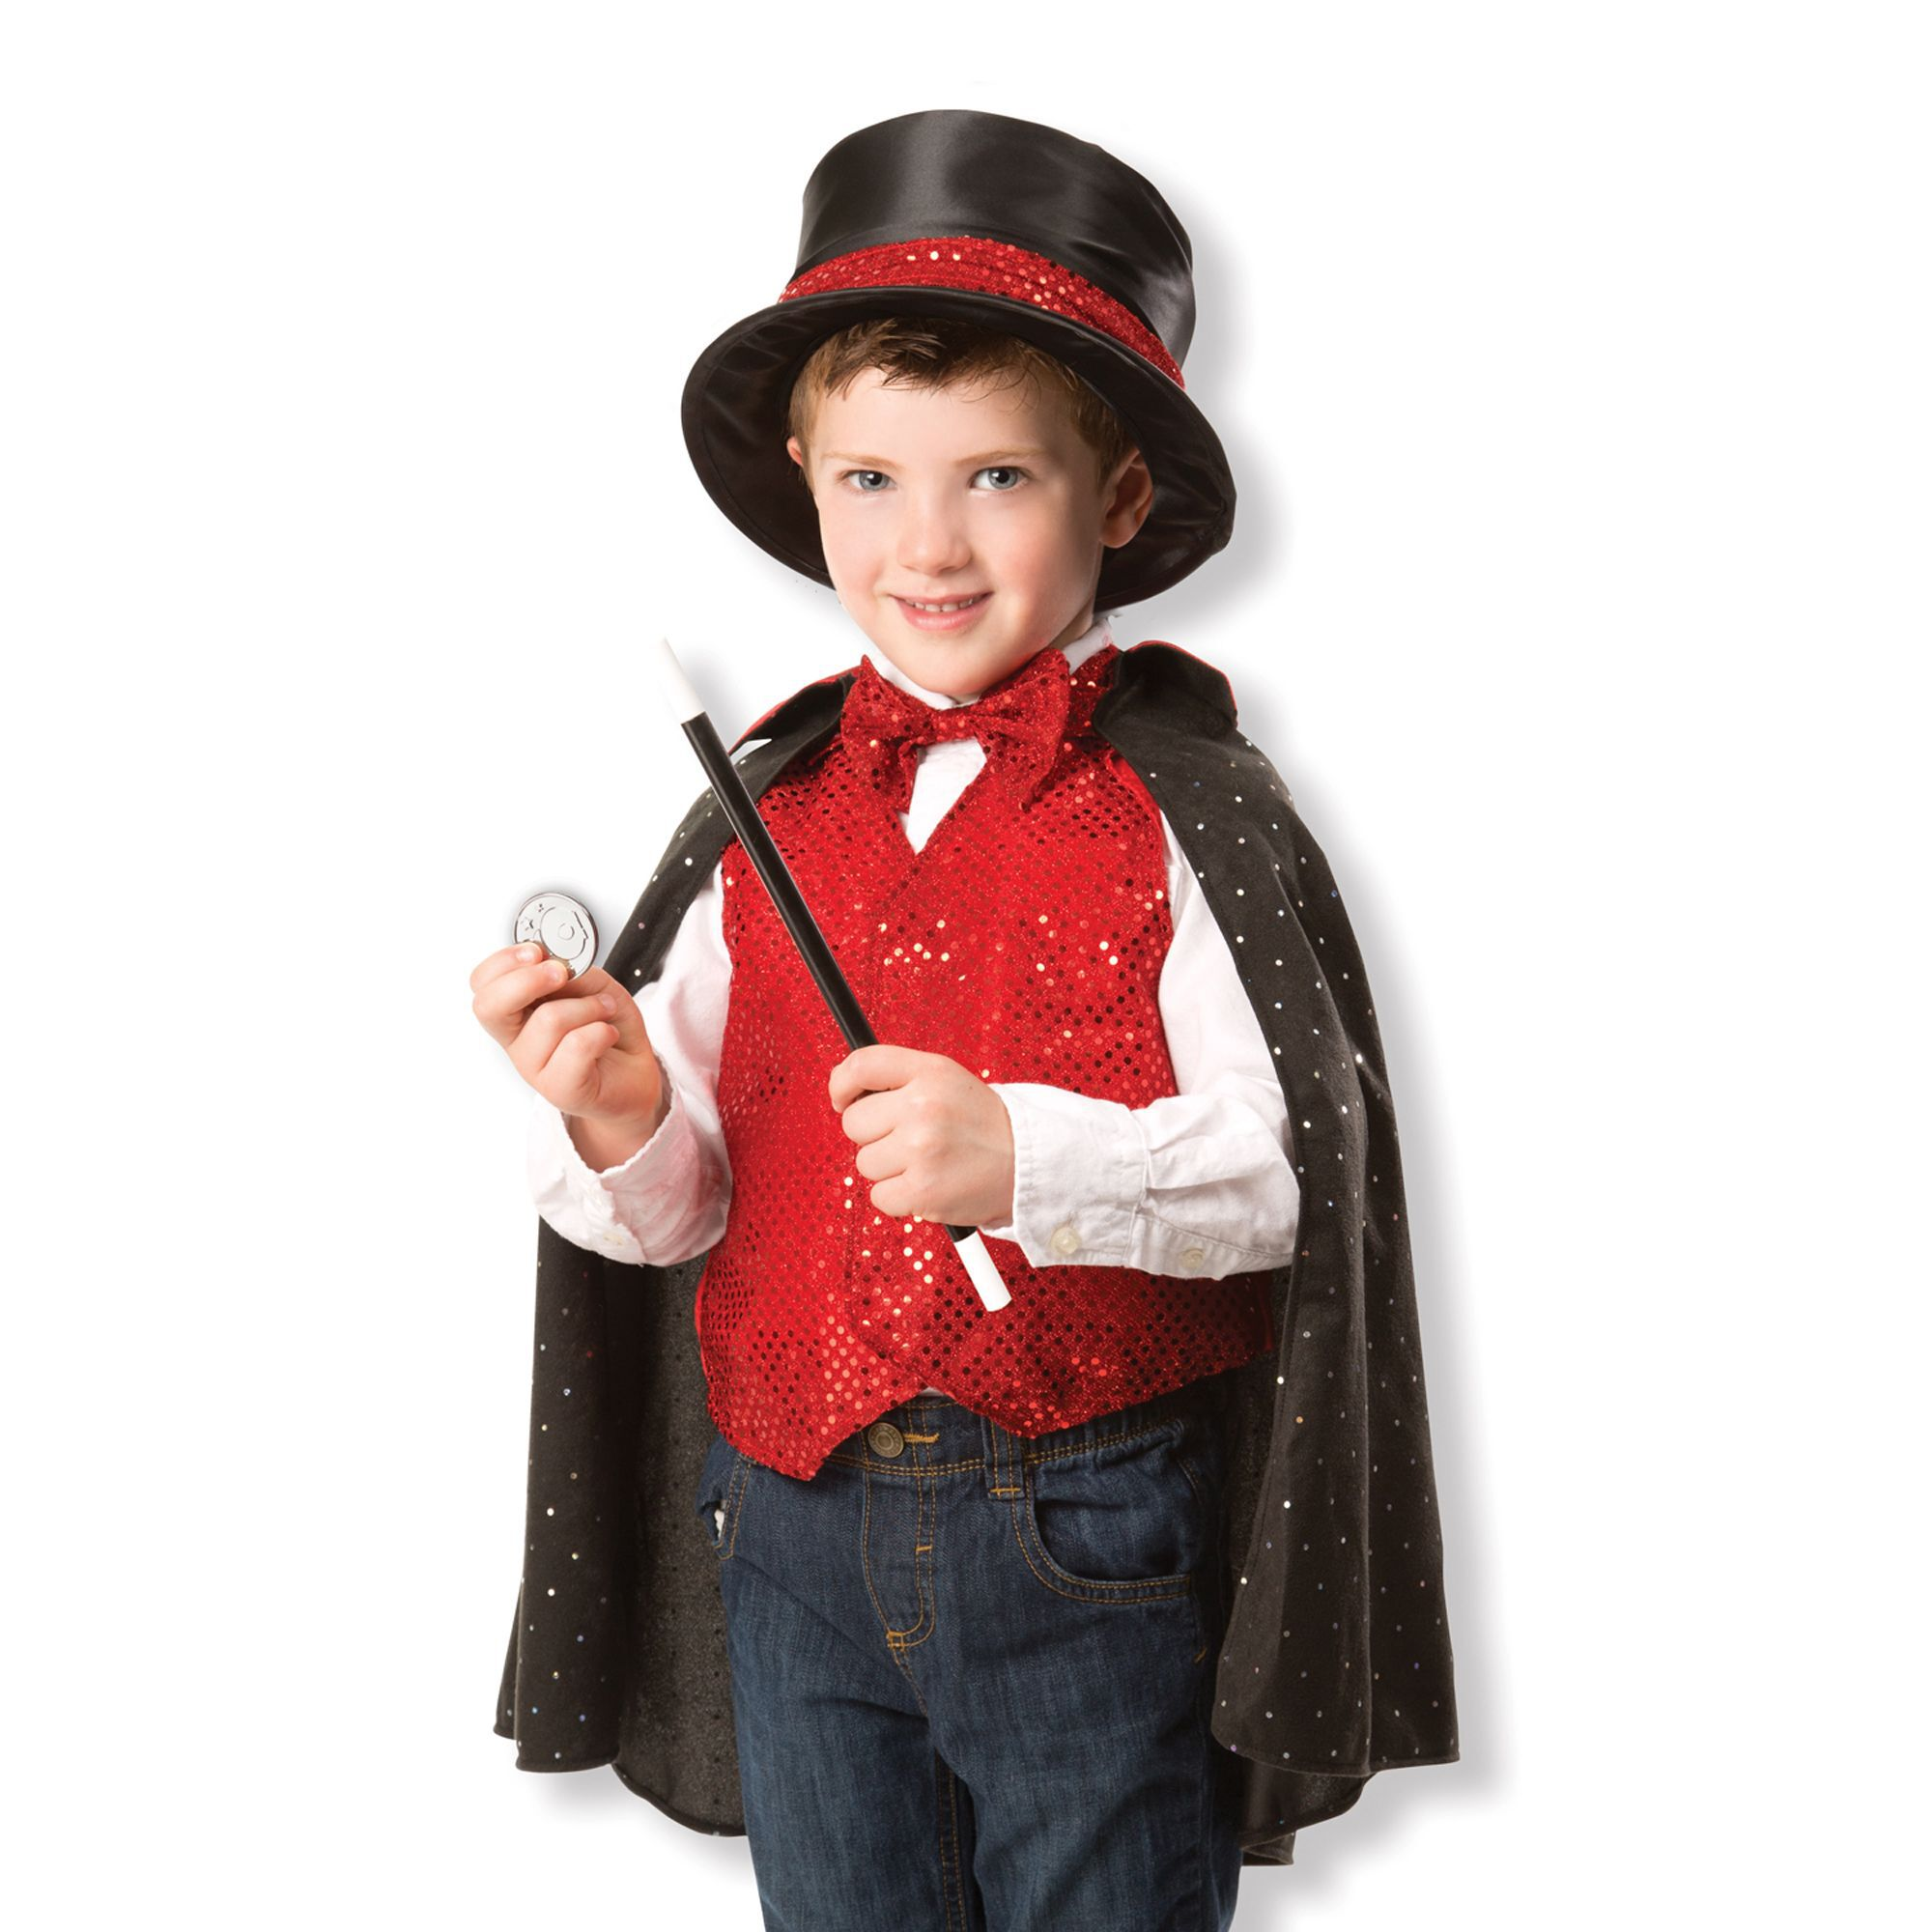 Magician Role Play Costume Set  sc 1 st  Melissa u0026 Doug & Magician Role Play Costume Set | Melissa u0026 Doug